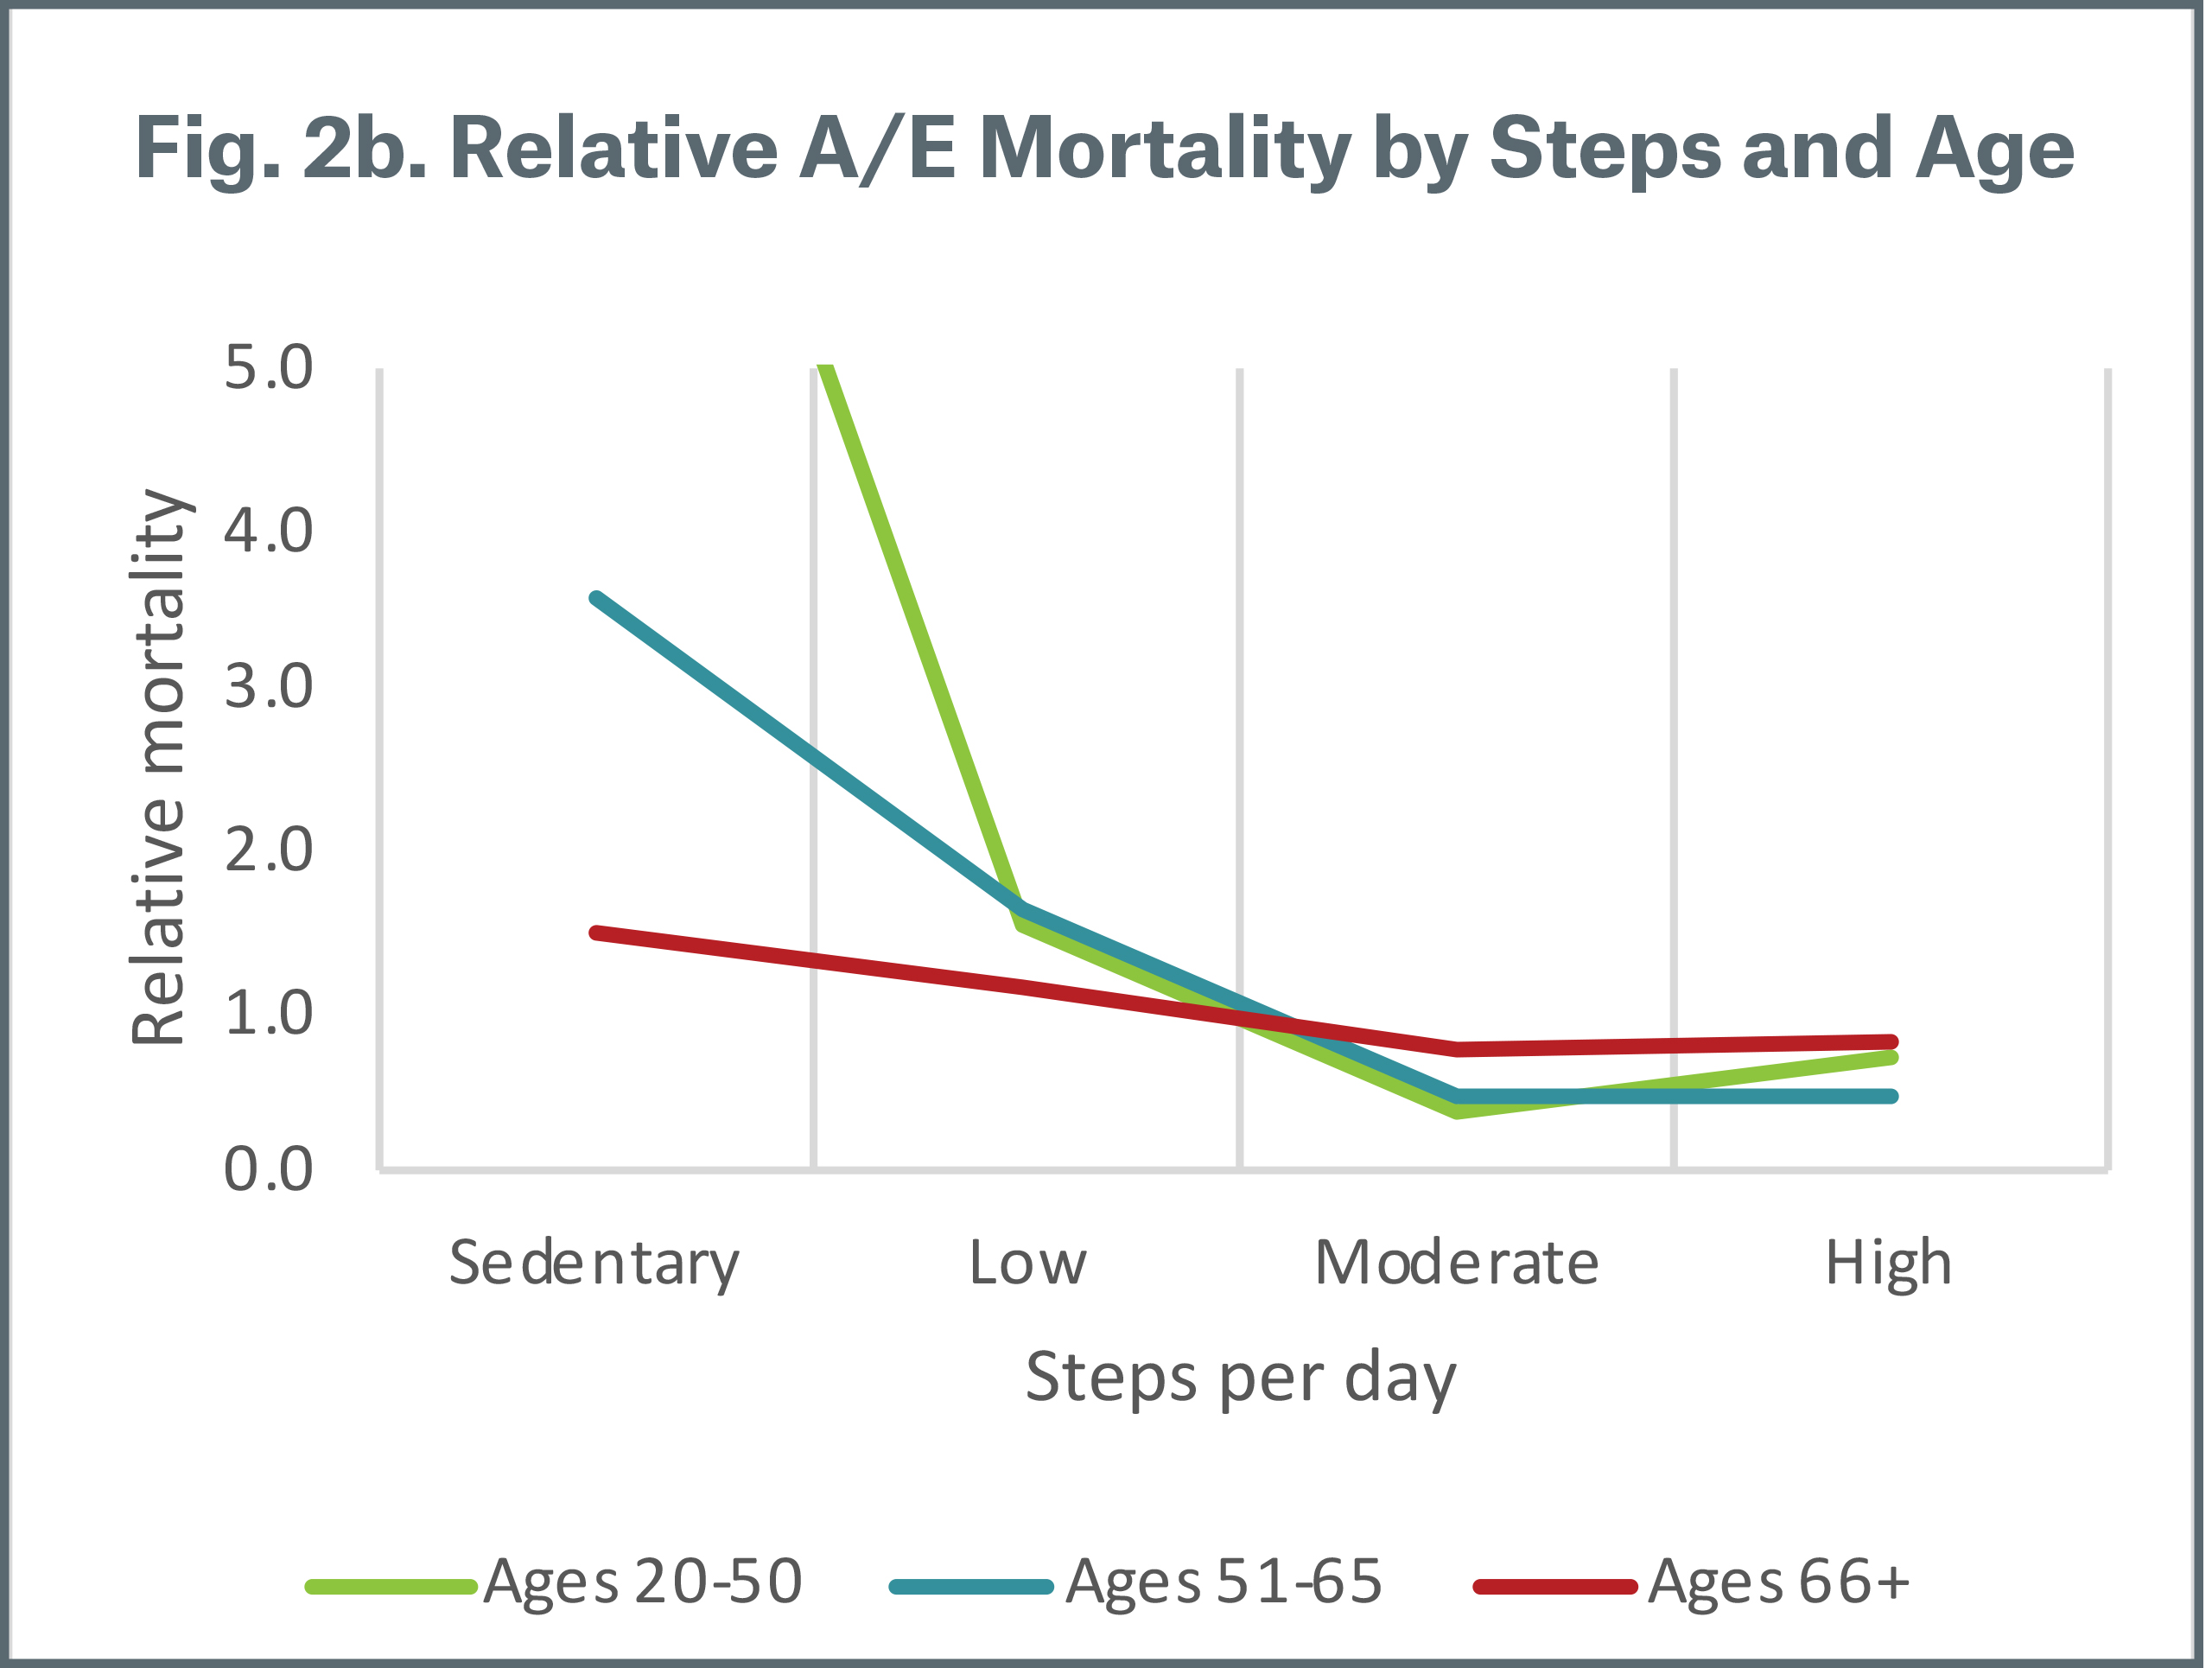 Figure 2b Relative A/E Mortality by Steps and Age